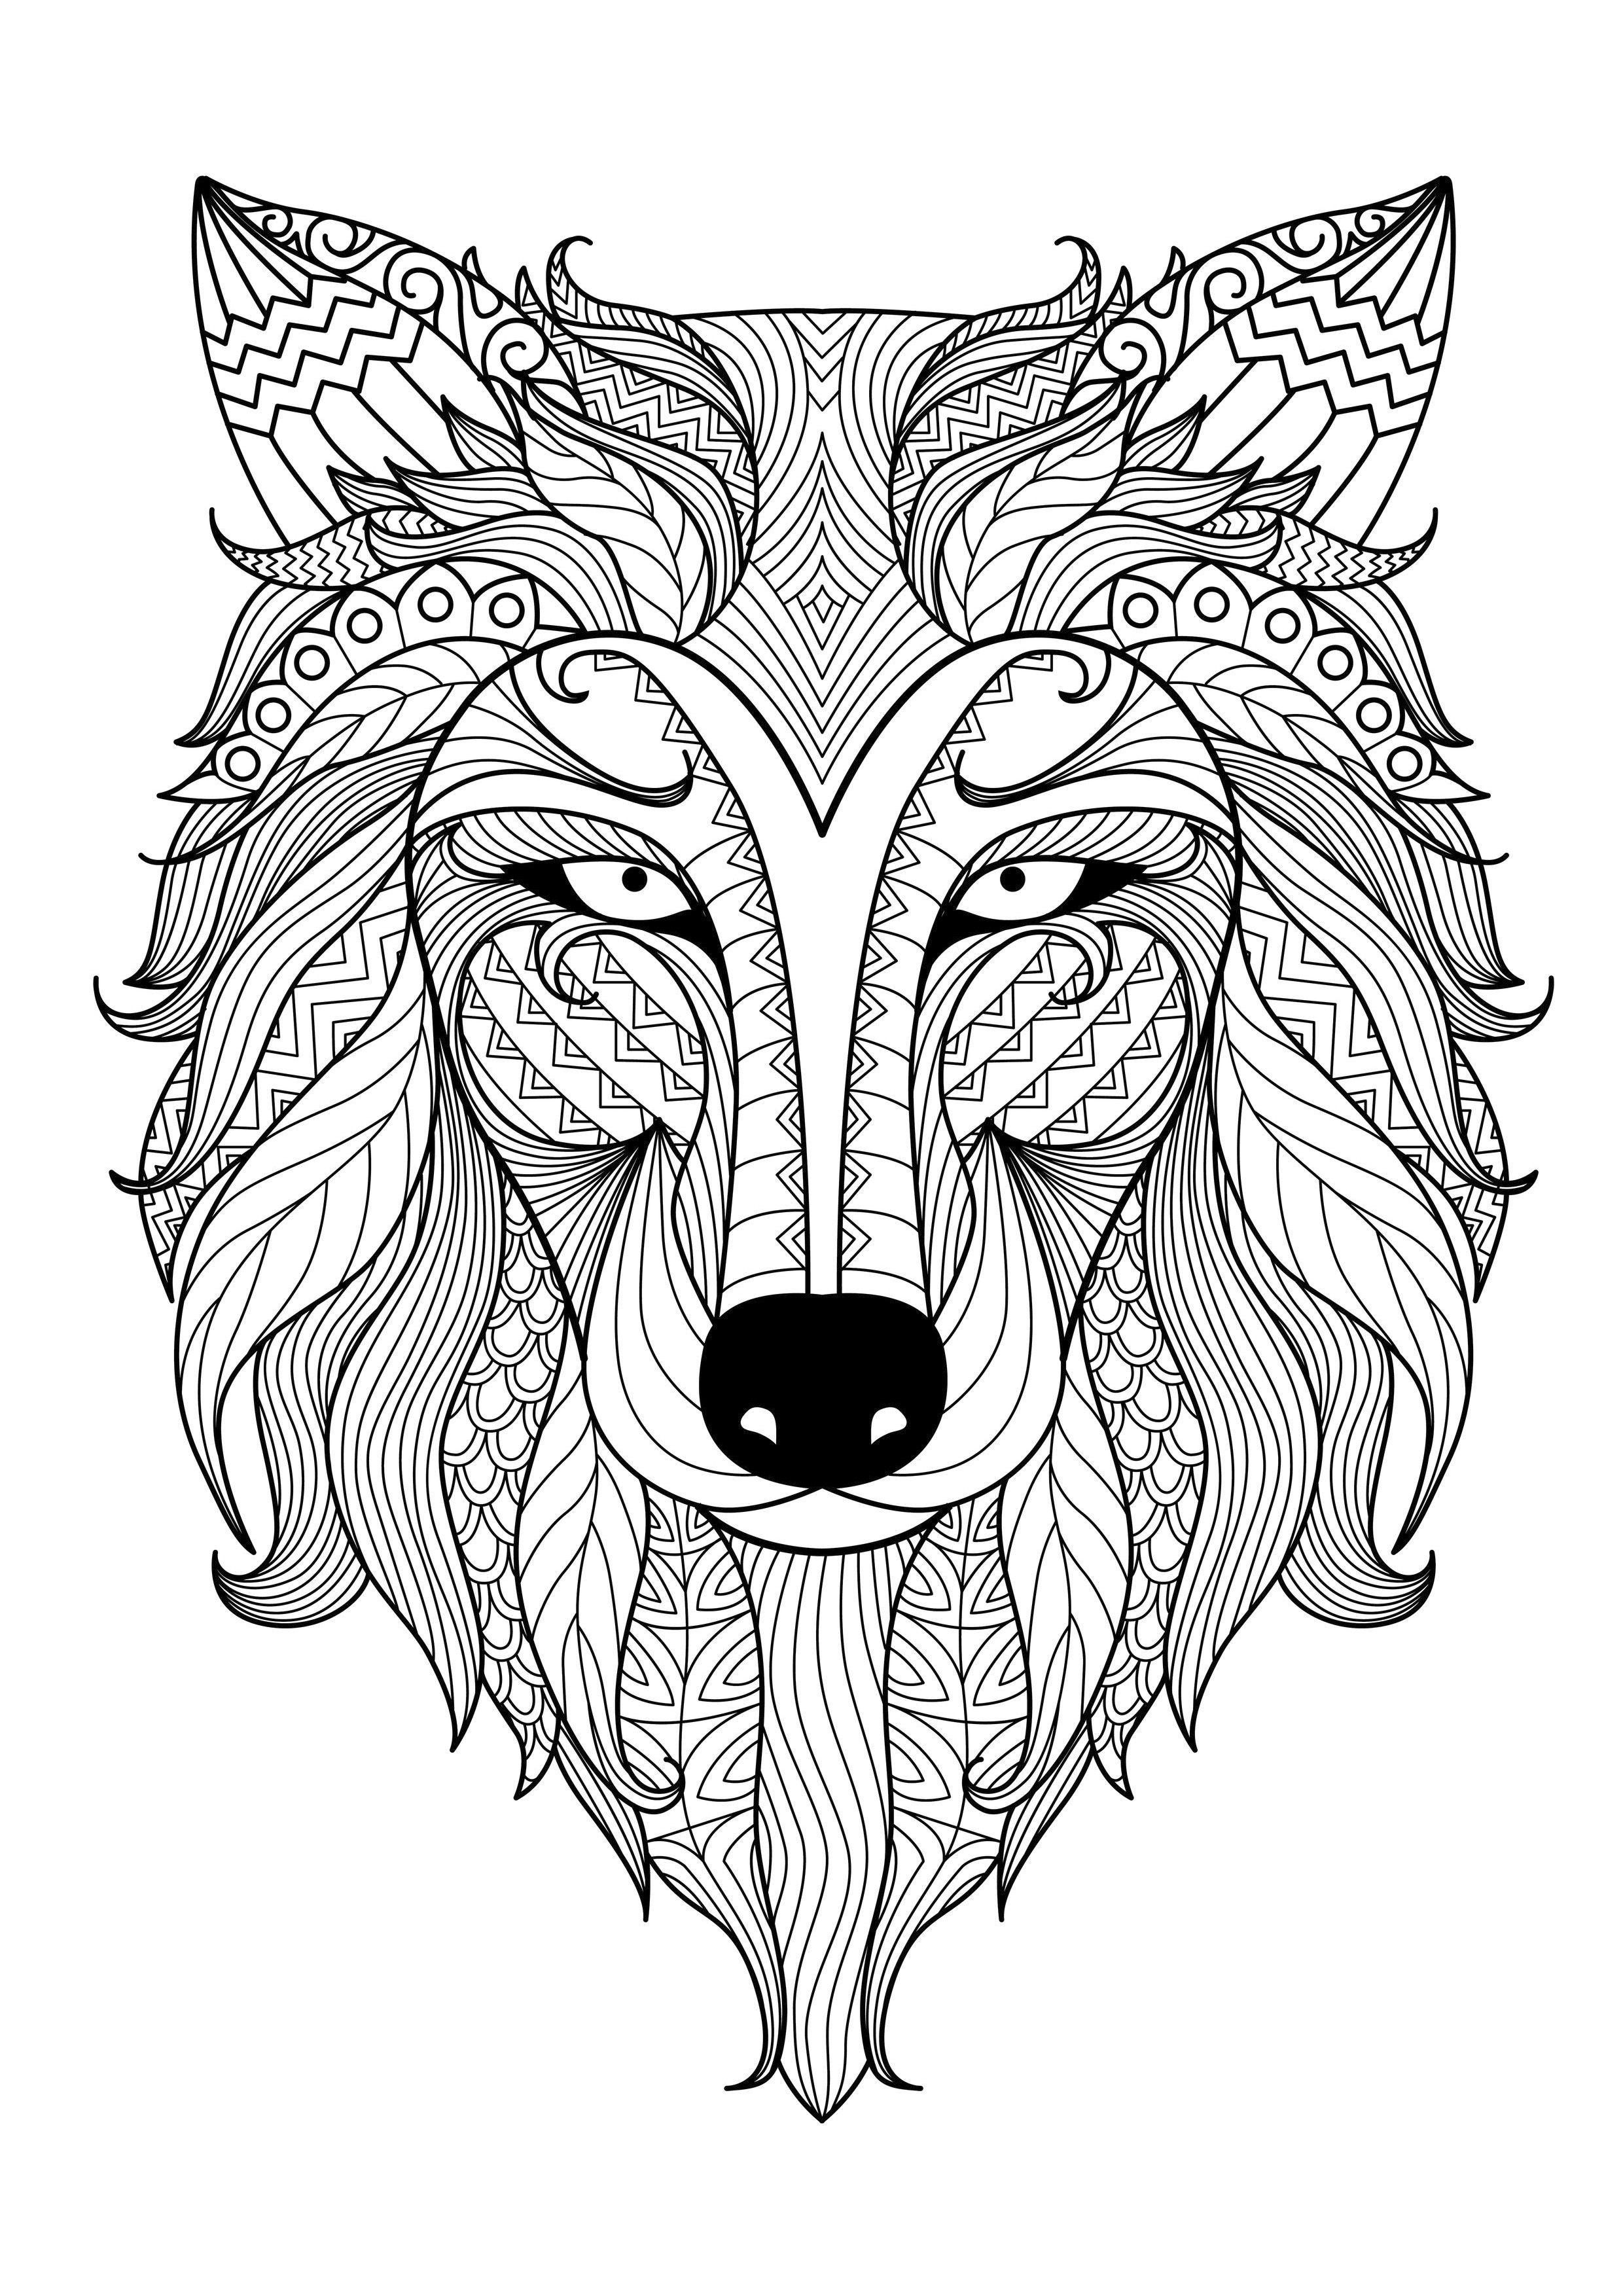 Incredible adult coloring page of a wolf from the gallery animals artist